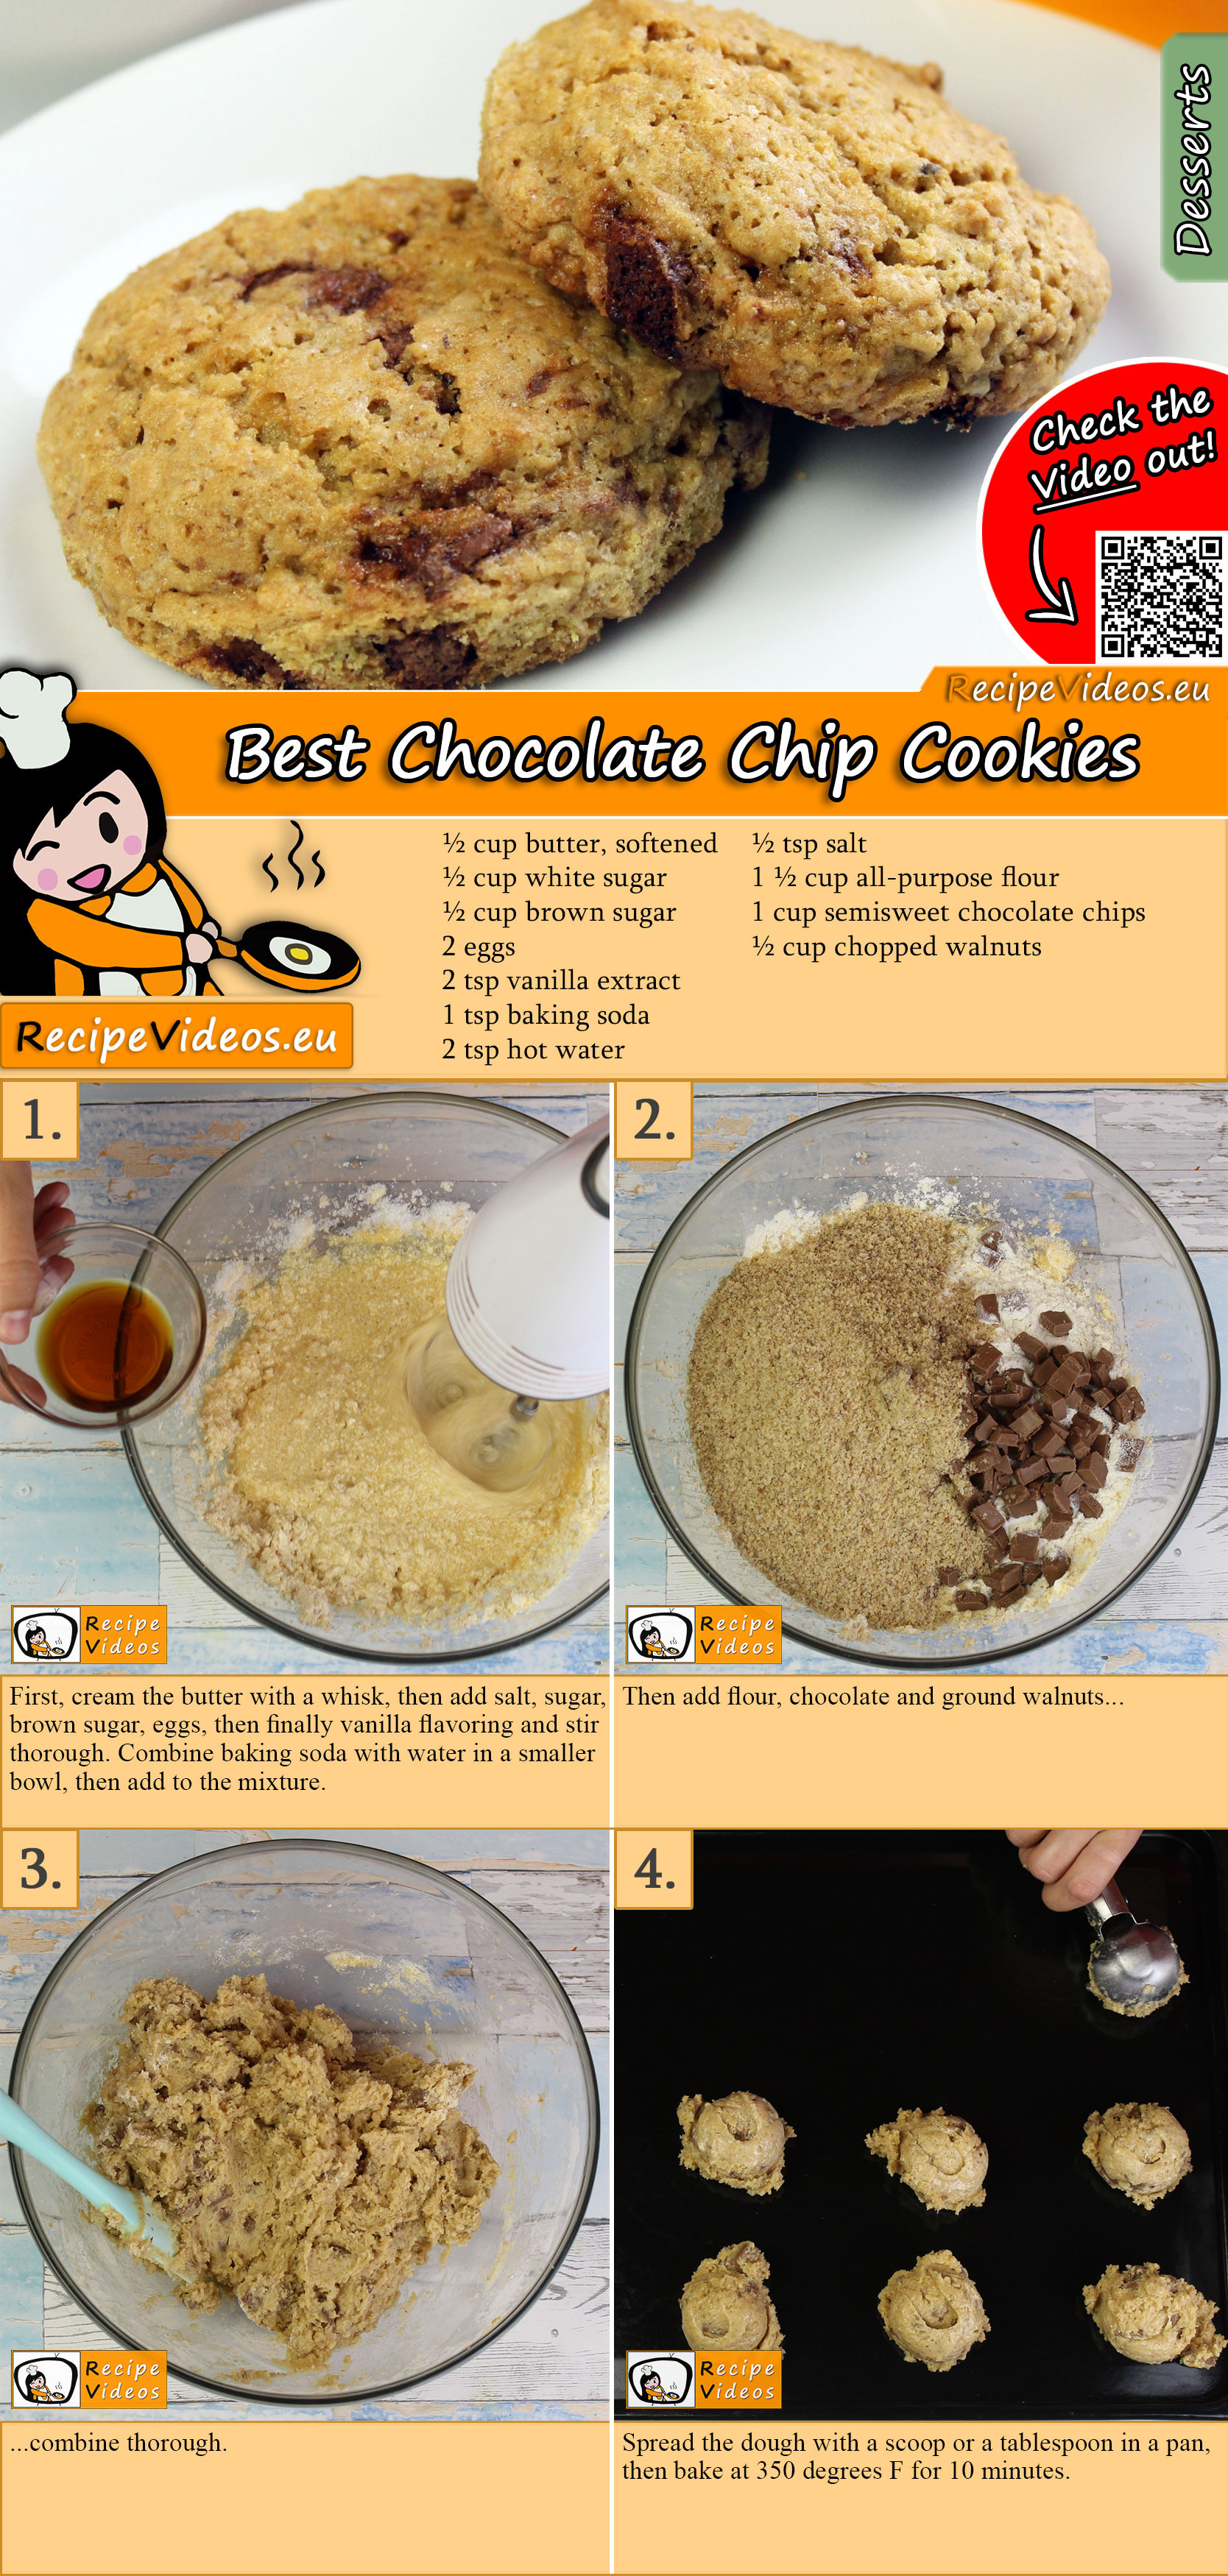 Best Chocolate Chip Cookies recipe with video